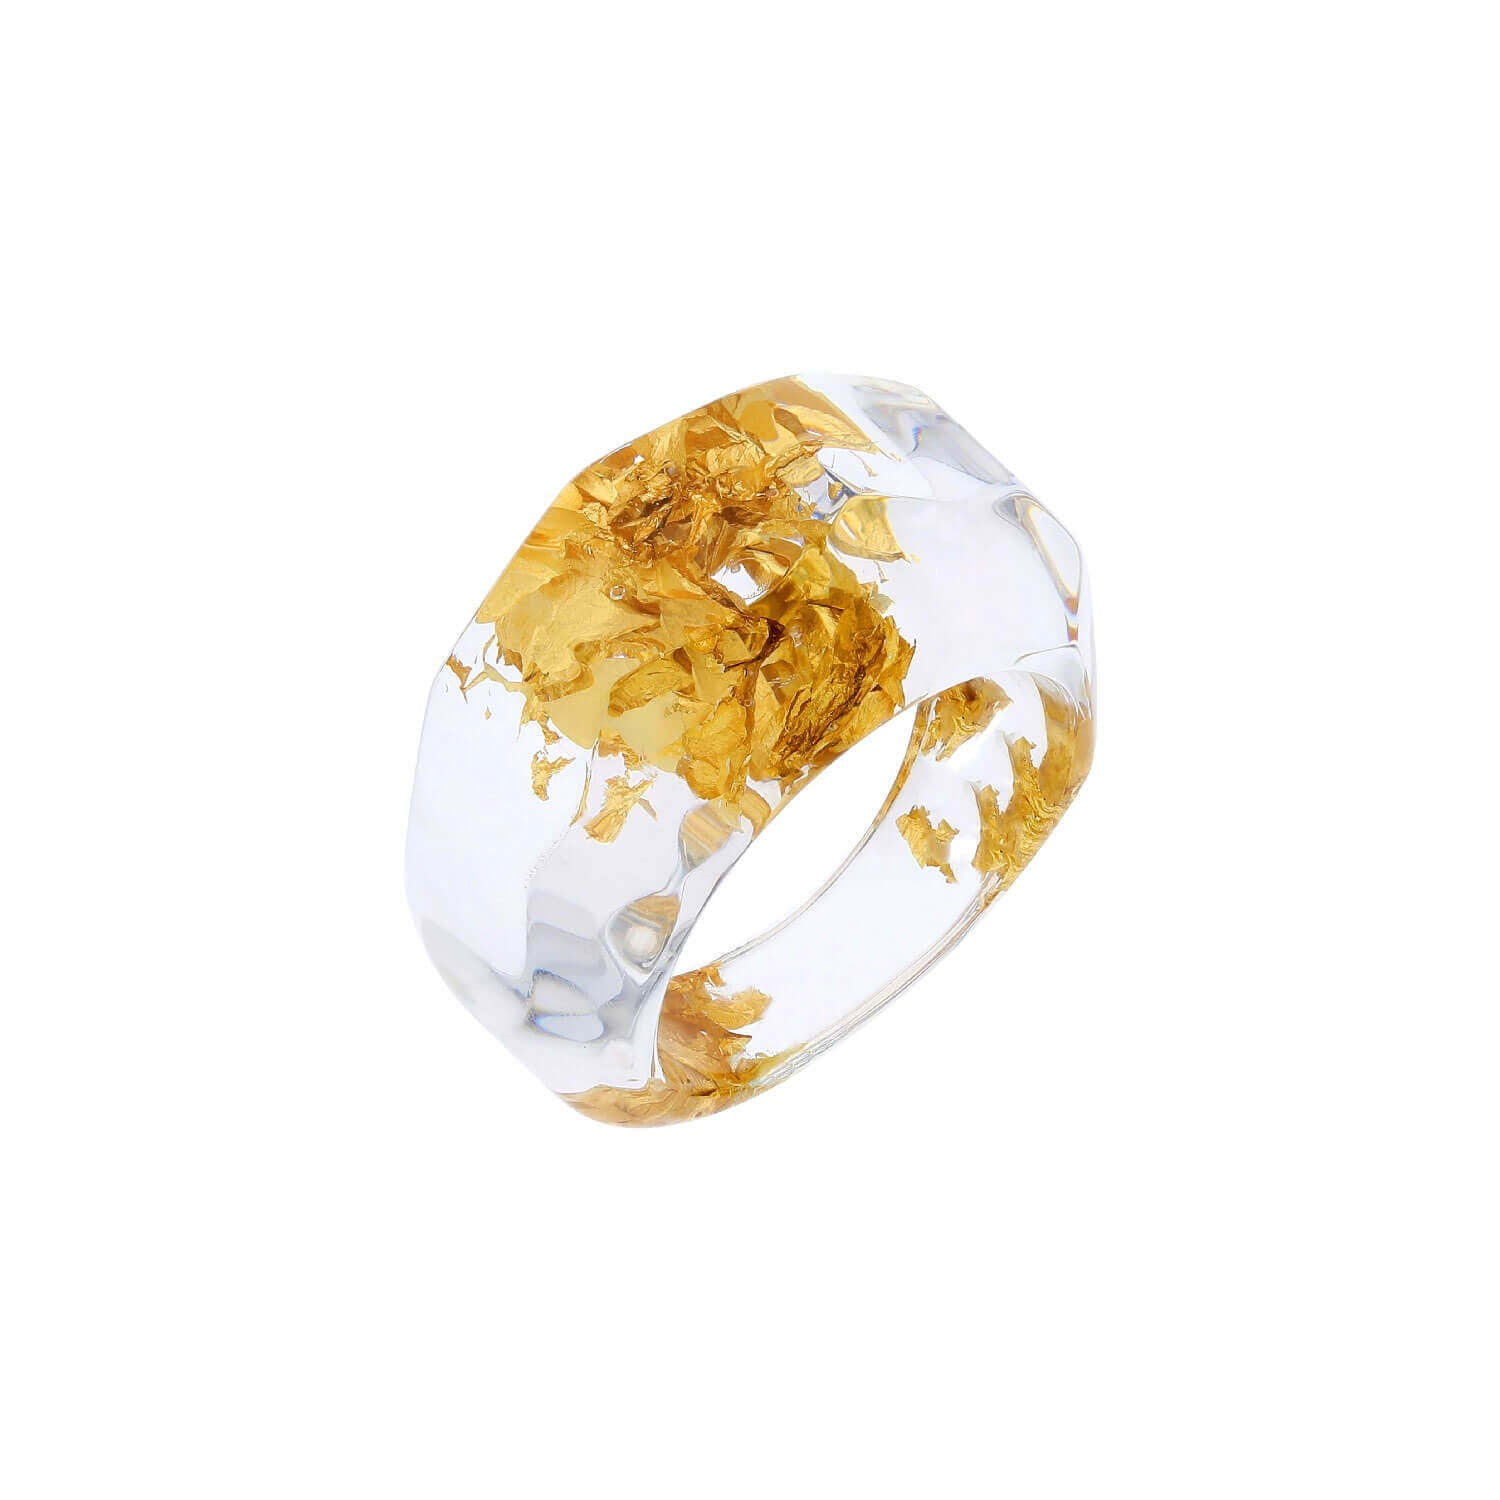 Clear Lucite Ring with Gold Leaf